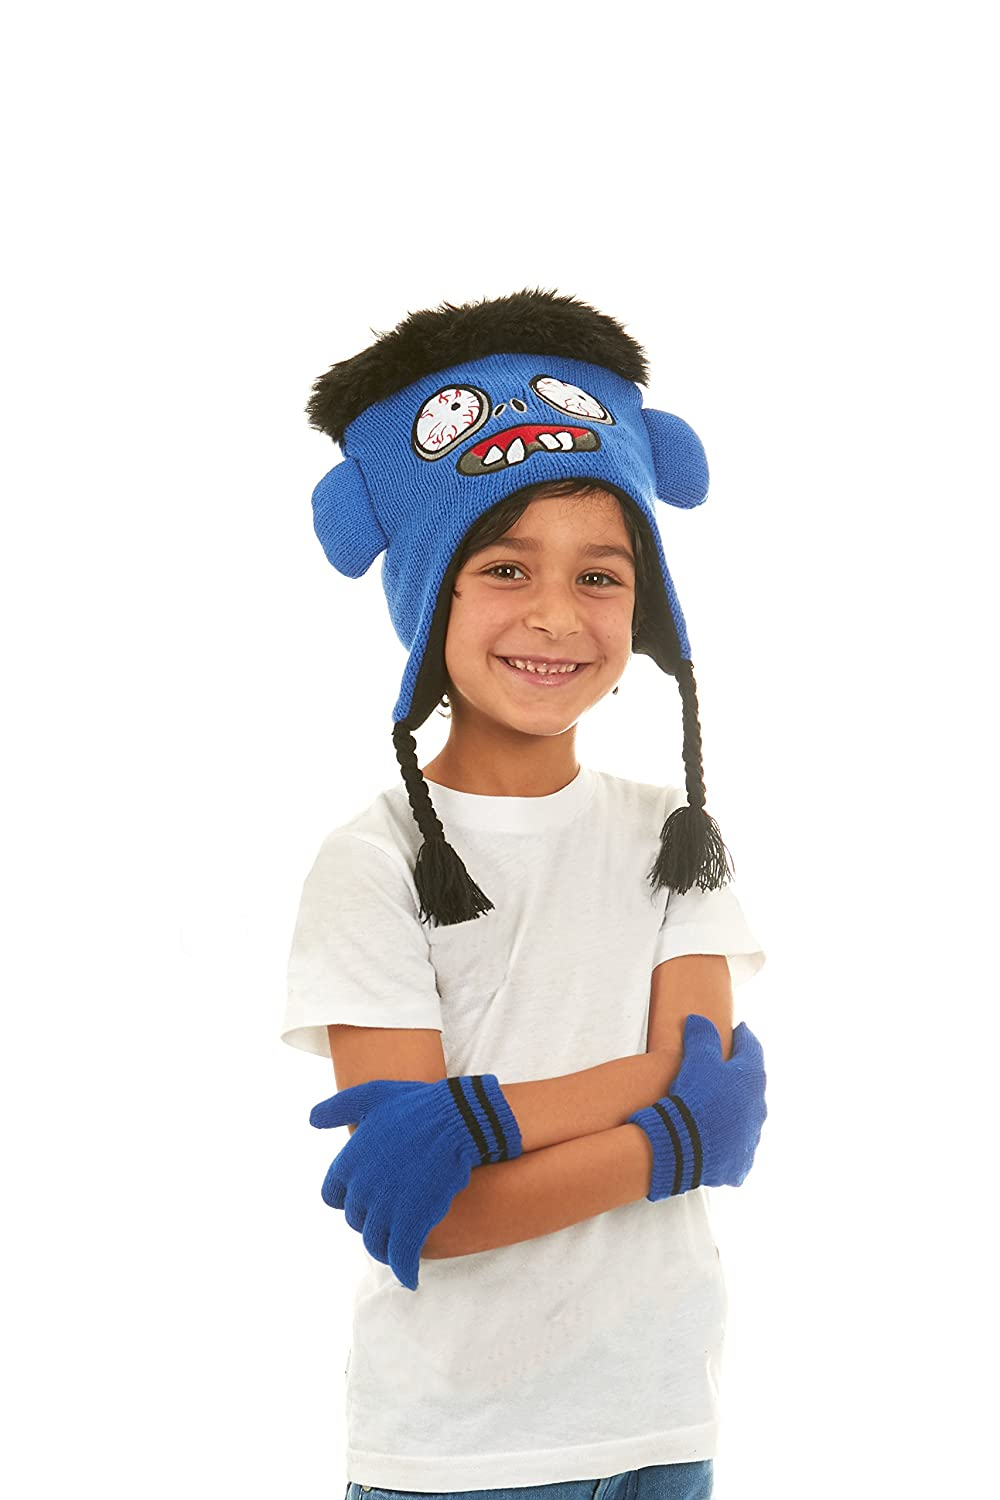 Polar Wear Infant & Toddler Boys Knitted Hat And Gloves Set (See More Colors and Sizes)